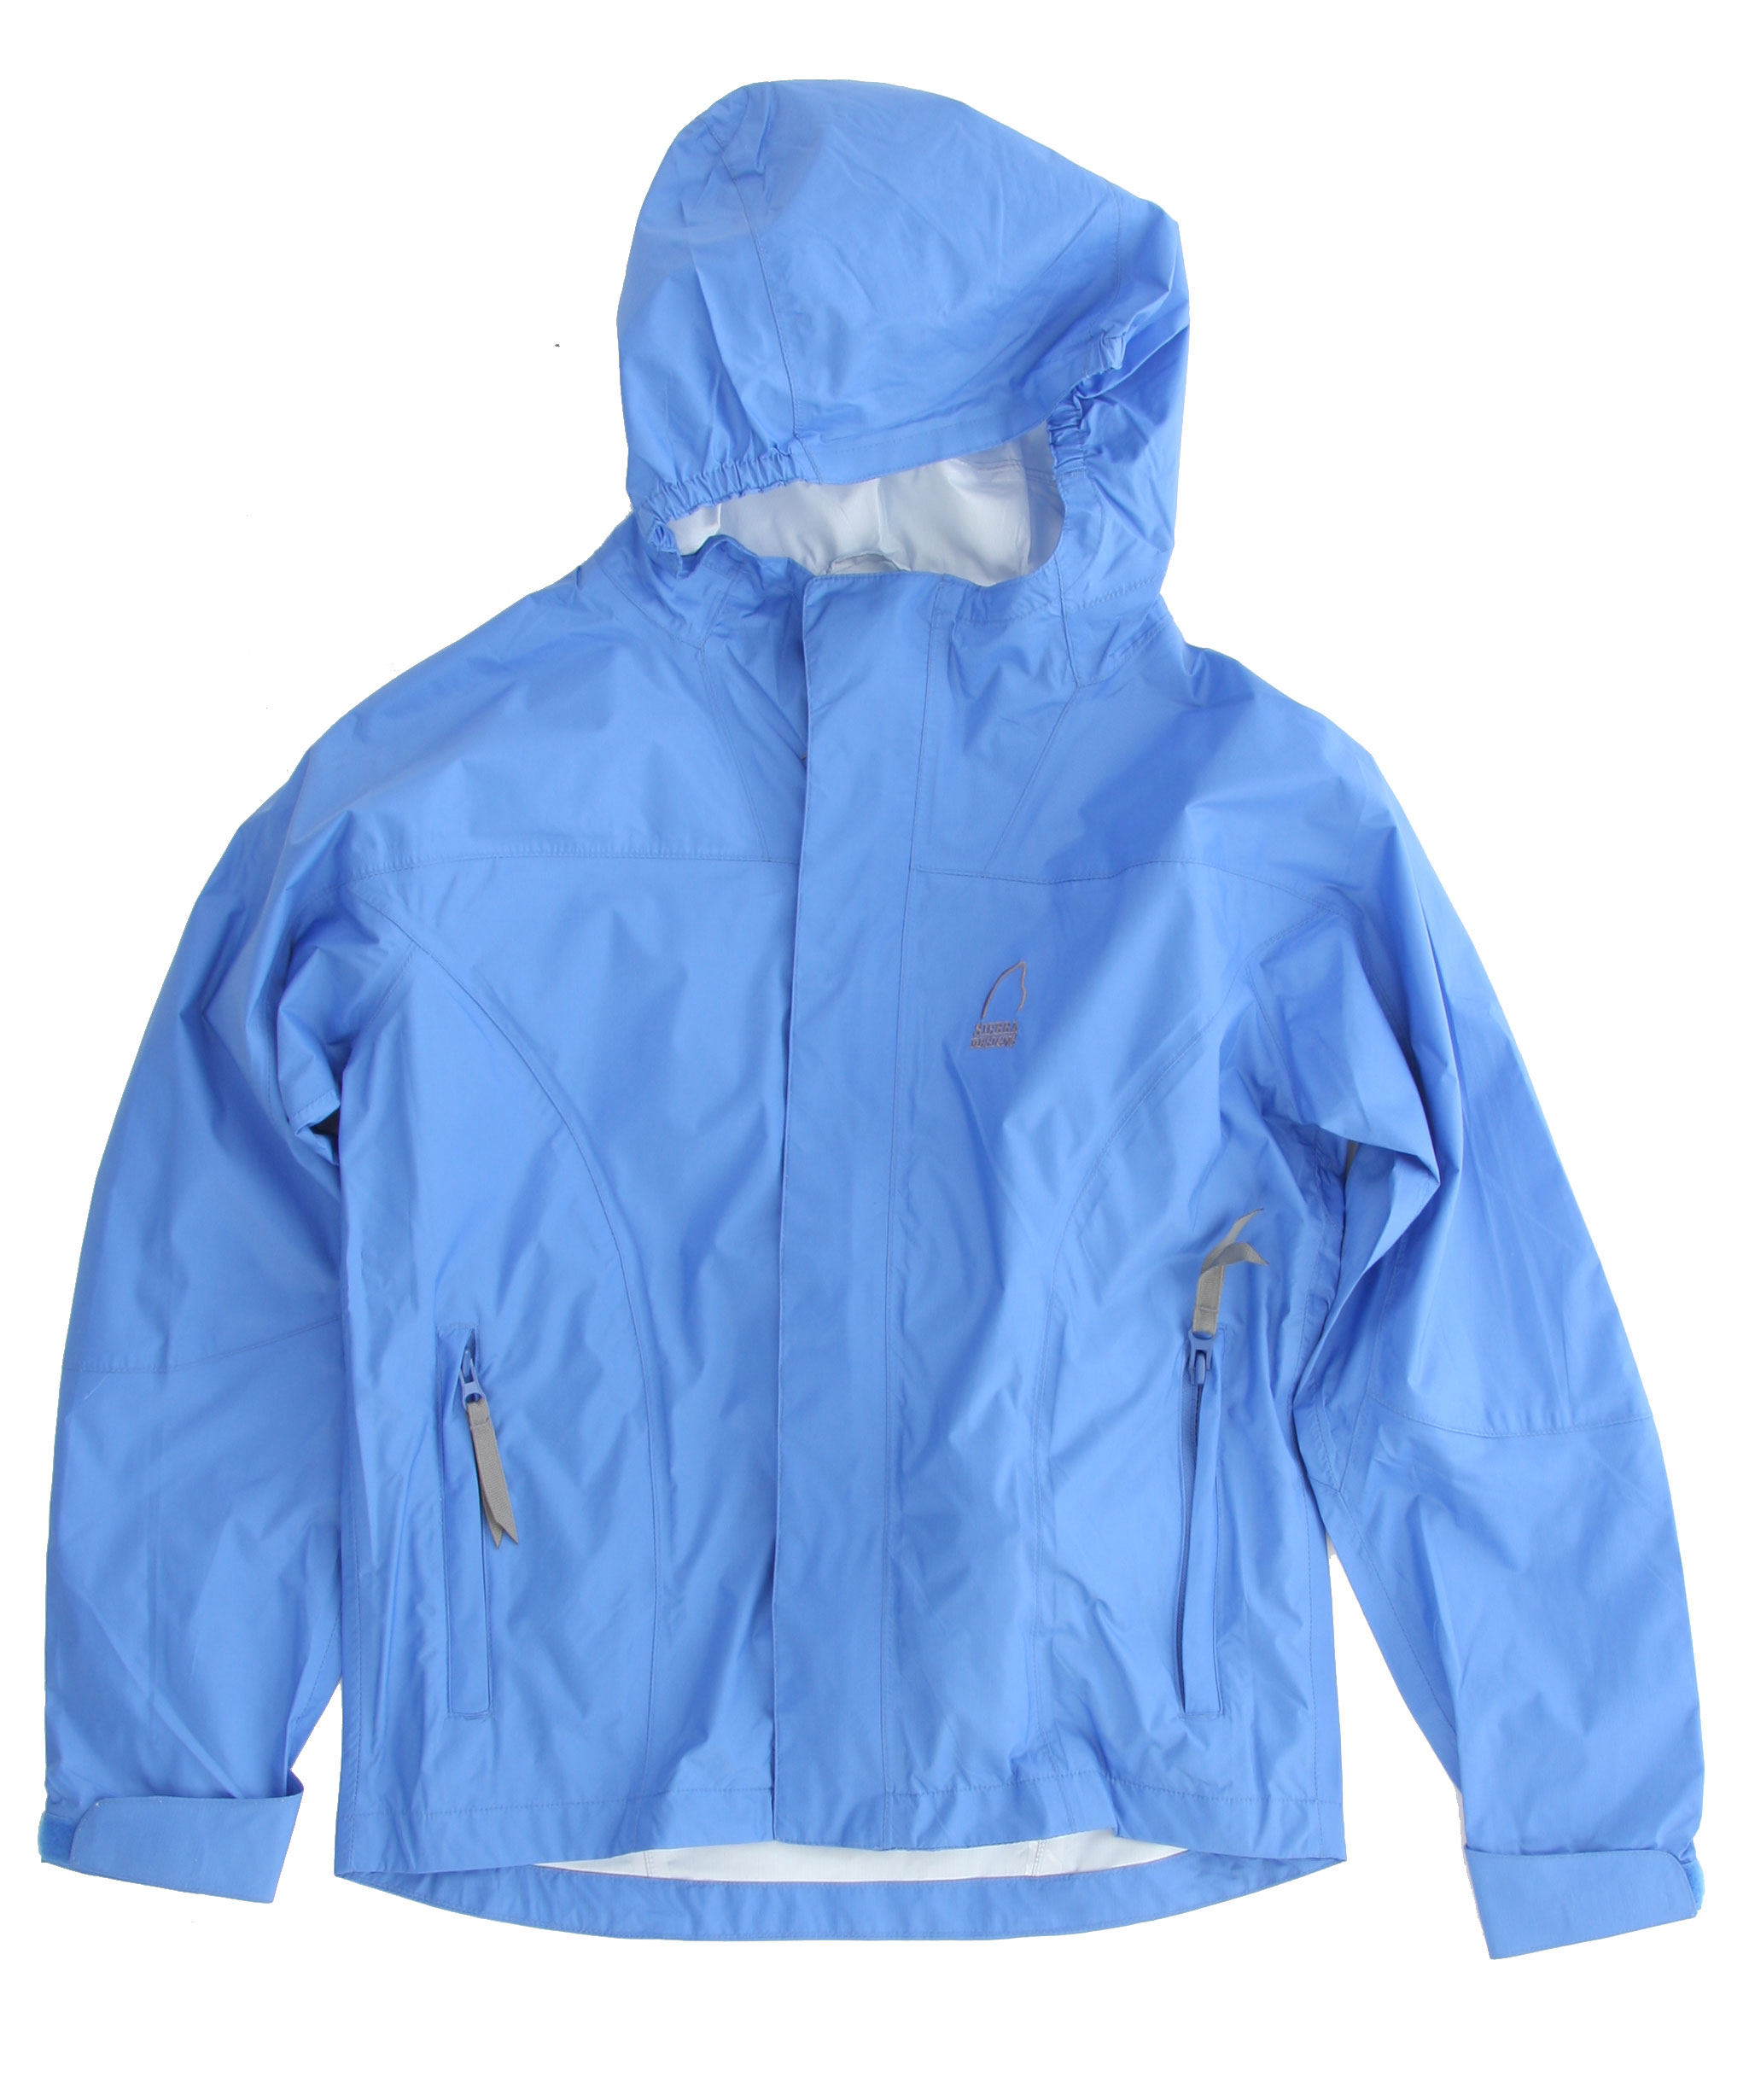 "Waterproof, breathable, the Sierra Designs Hurricane Girl's Shell Jacket is designed specifically for girls. We build these out of our reliable Hurricane fabric, with seam sealing and an adjustable hood.Key Features of the Sierra Designs Hurricane Girl's Shell Jacket: 5,000mm Waterproof 5,000g Breathability Fully Taped PVC-Free Seams Encased Elastic on Each Side of Hood and Hood Has Visor Reverse Coil Center Front Zipper 2 Zippered Hand Pockets 1 Zippered Interior Chest Pocket with Earbud Portal Adjustable Cuffs Center Back Length 23.25"" (M) Weight 8.5 oz Hurricane 5,000/ 5,000 100% Nylon Ripstop, 40D, Solvent-Free Laminate with DWR finish, 3.45 oz/yd; (117 g/sqm) - $24.20"